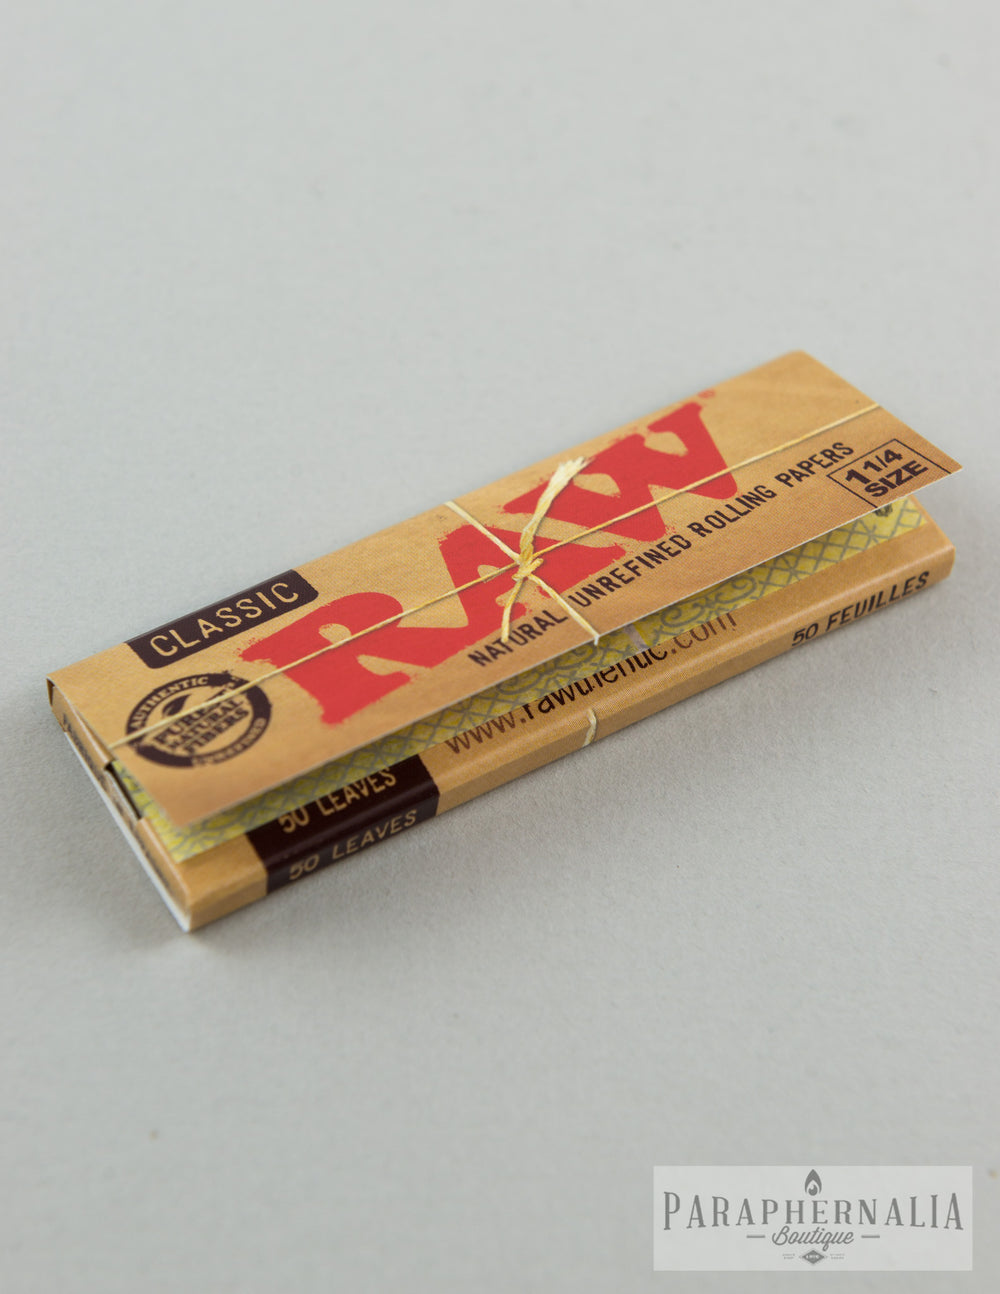 RAW Classic 1 1/4 Natural Unrefined Rolling Papers - 50 Per Pack